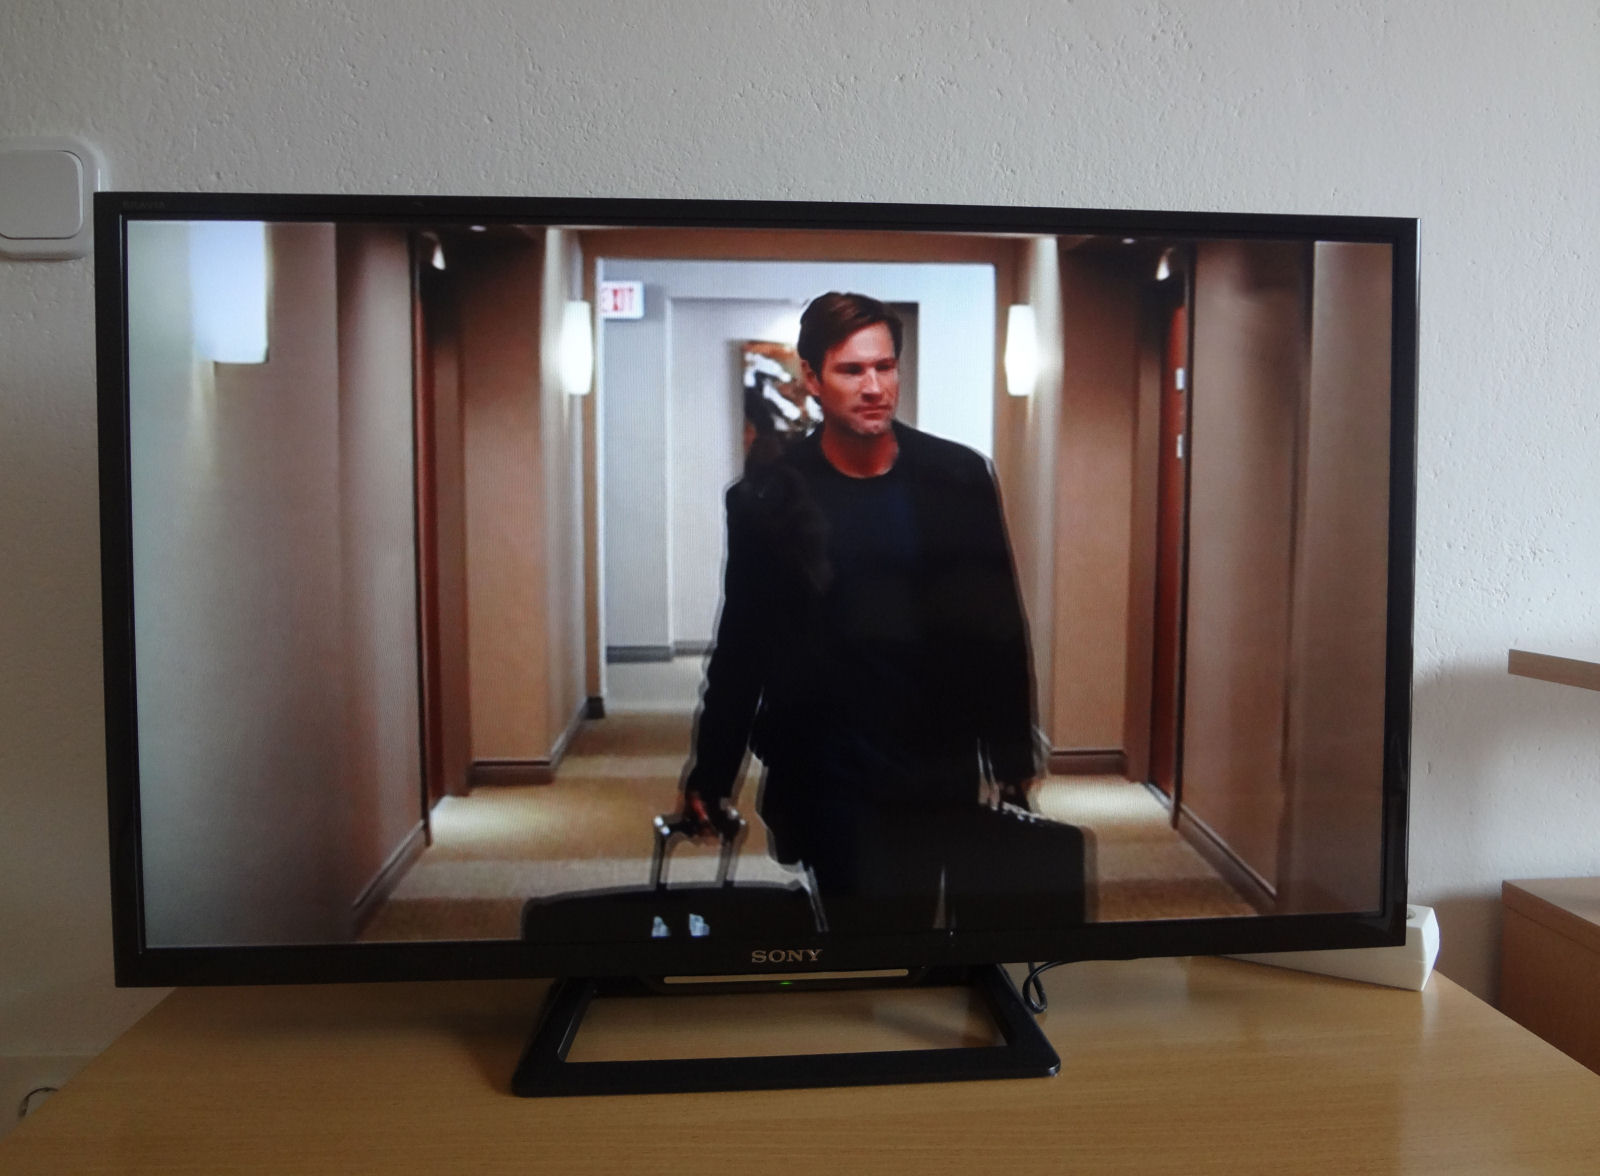 A brand new 32-Inch Sony Bravia LED TV with 130+ digital channels